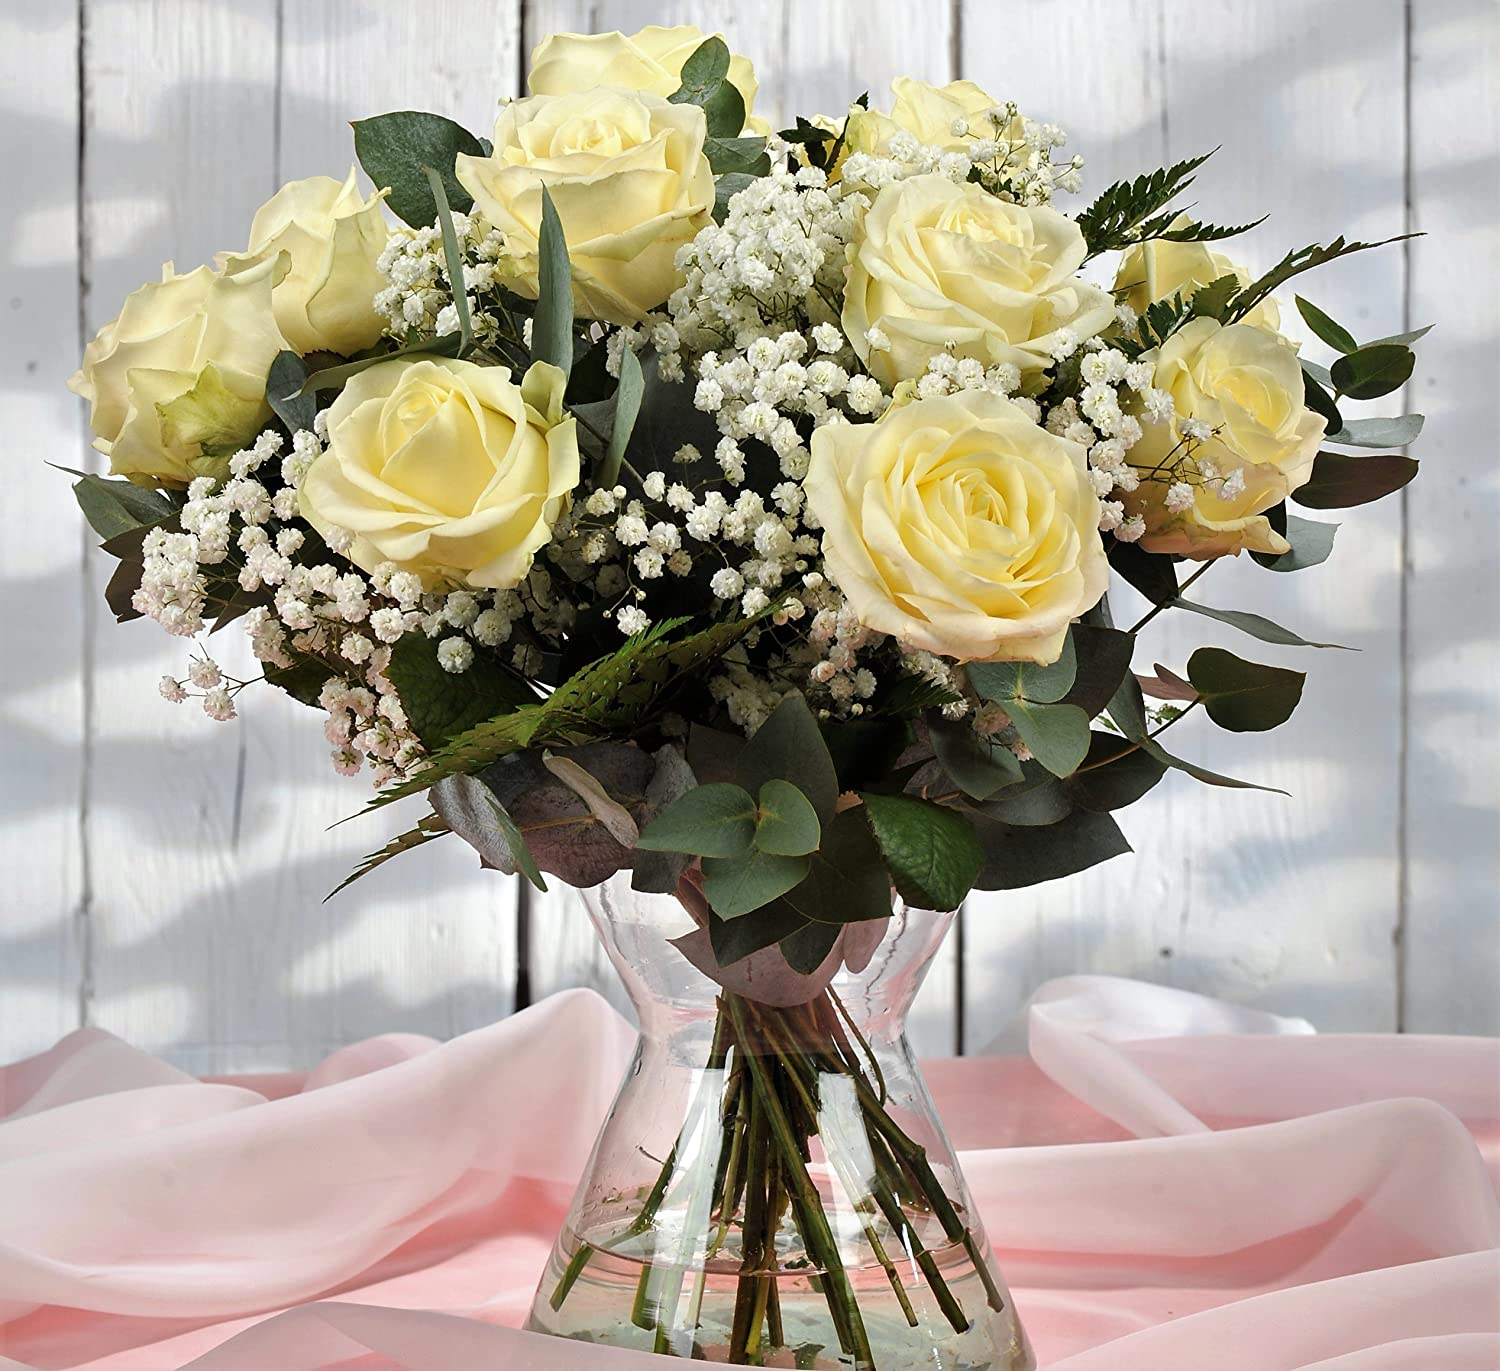 Stunning 12 Luxury Large White Rose Flower Bouquet Delivered - Free UK Next Day Delivery in a 1hr Time-Slot 7 Days a Week - Personalised Handwritten Card & Gift Wrapped Homeland Florists